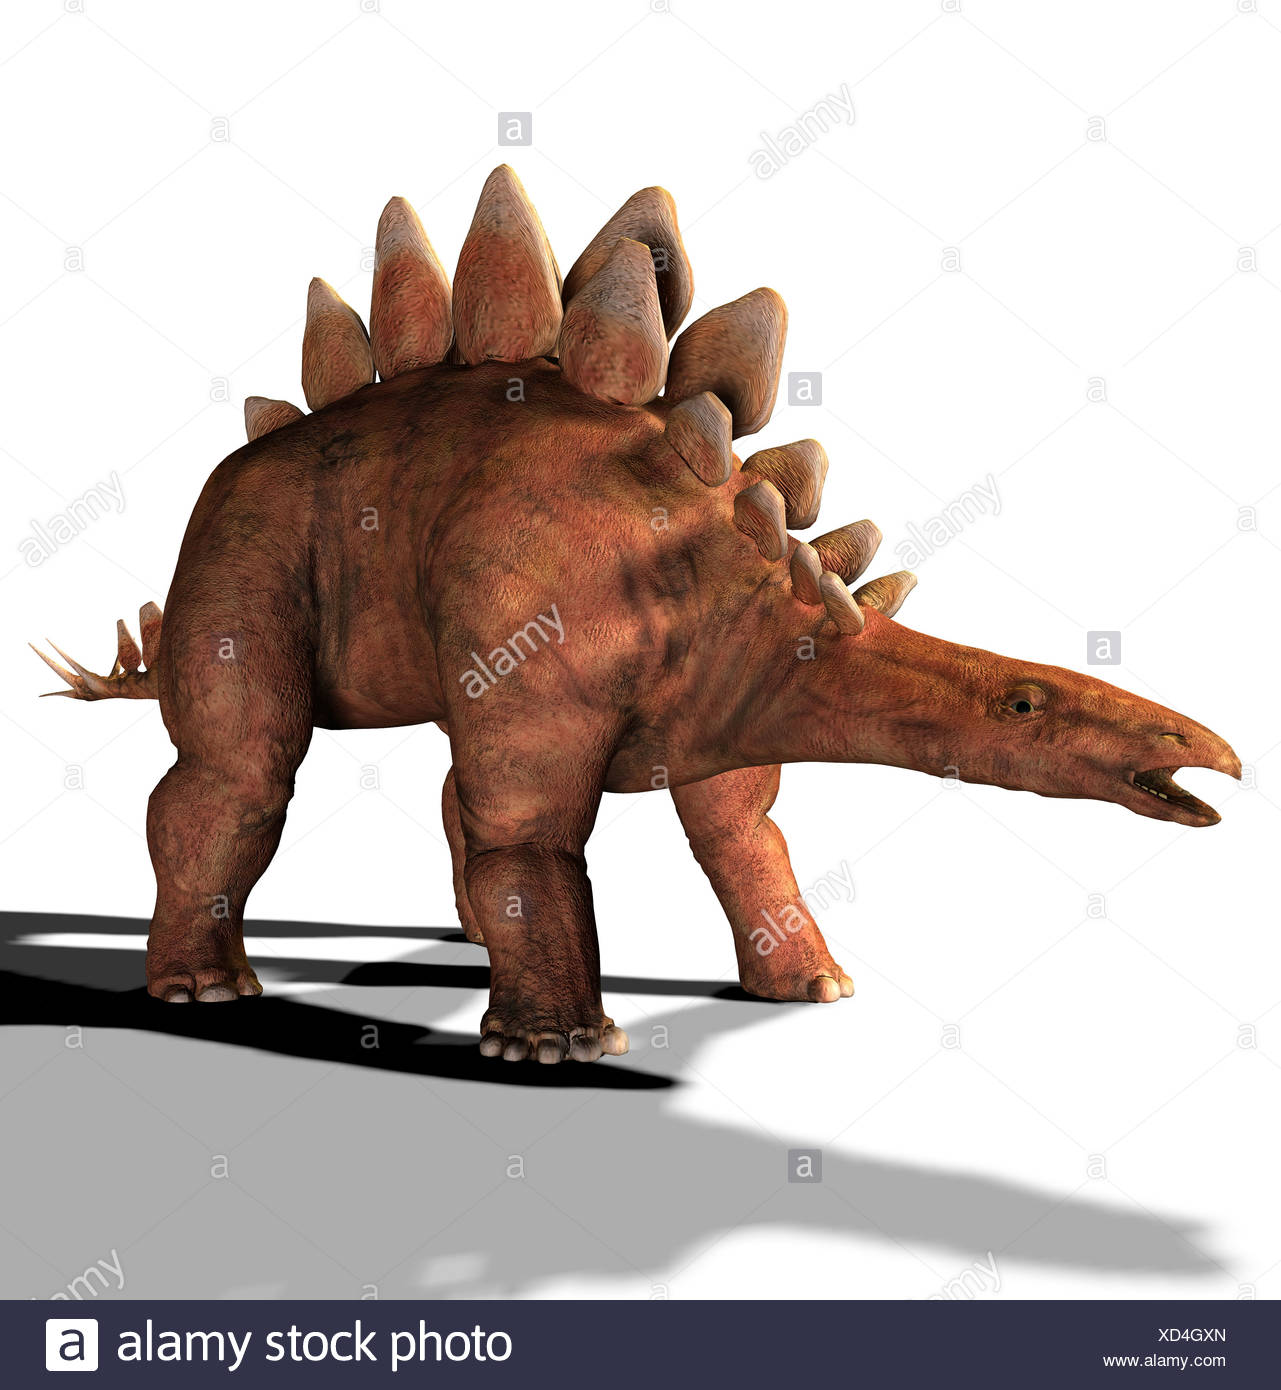 The Stegosaurus is called also plate lizard and in the jurassic period occurred. Its length amounted to approx. 8 m, the heightStock Photo